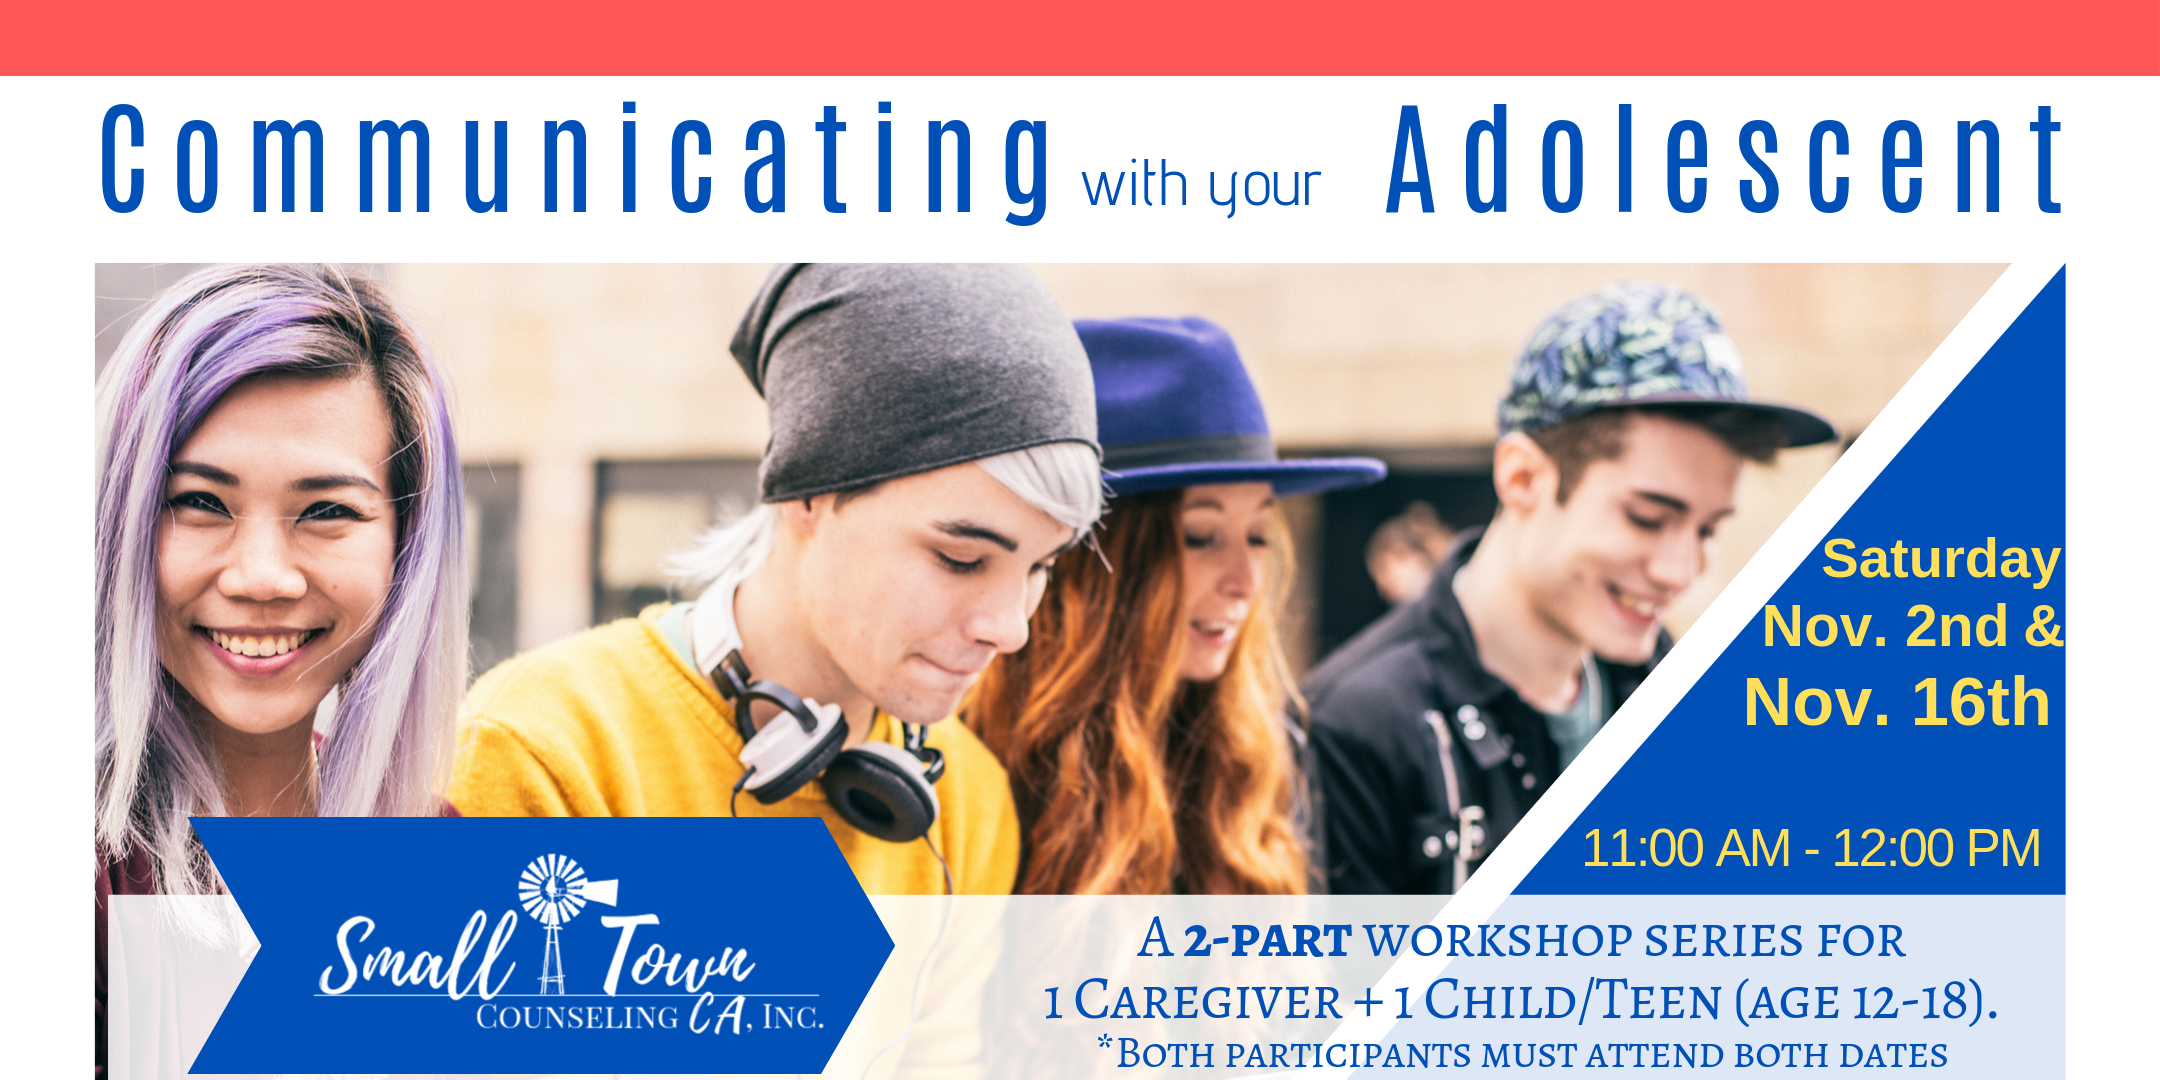 Communicating with your adolescent workshop for caregiver, child, or teen.